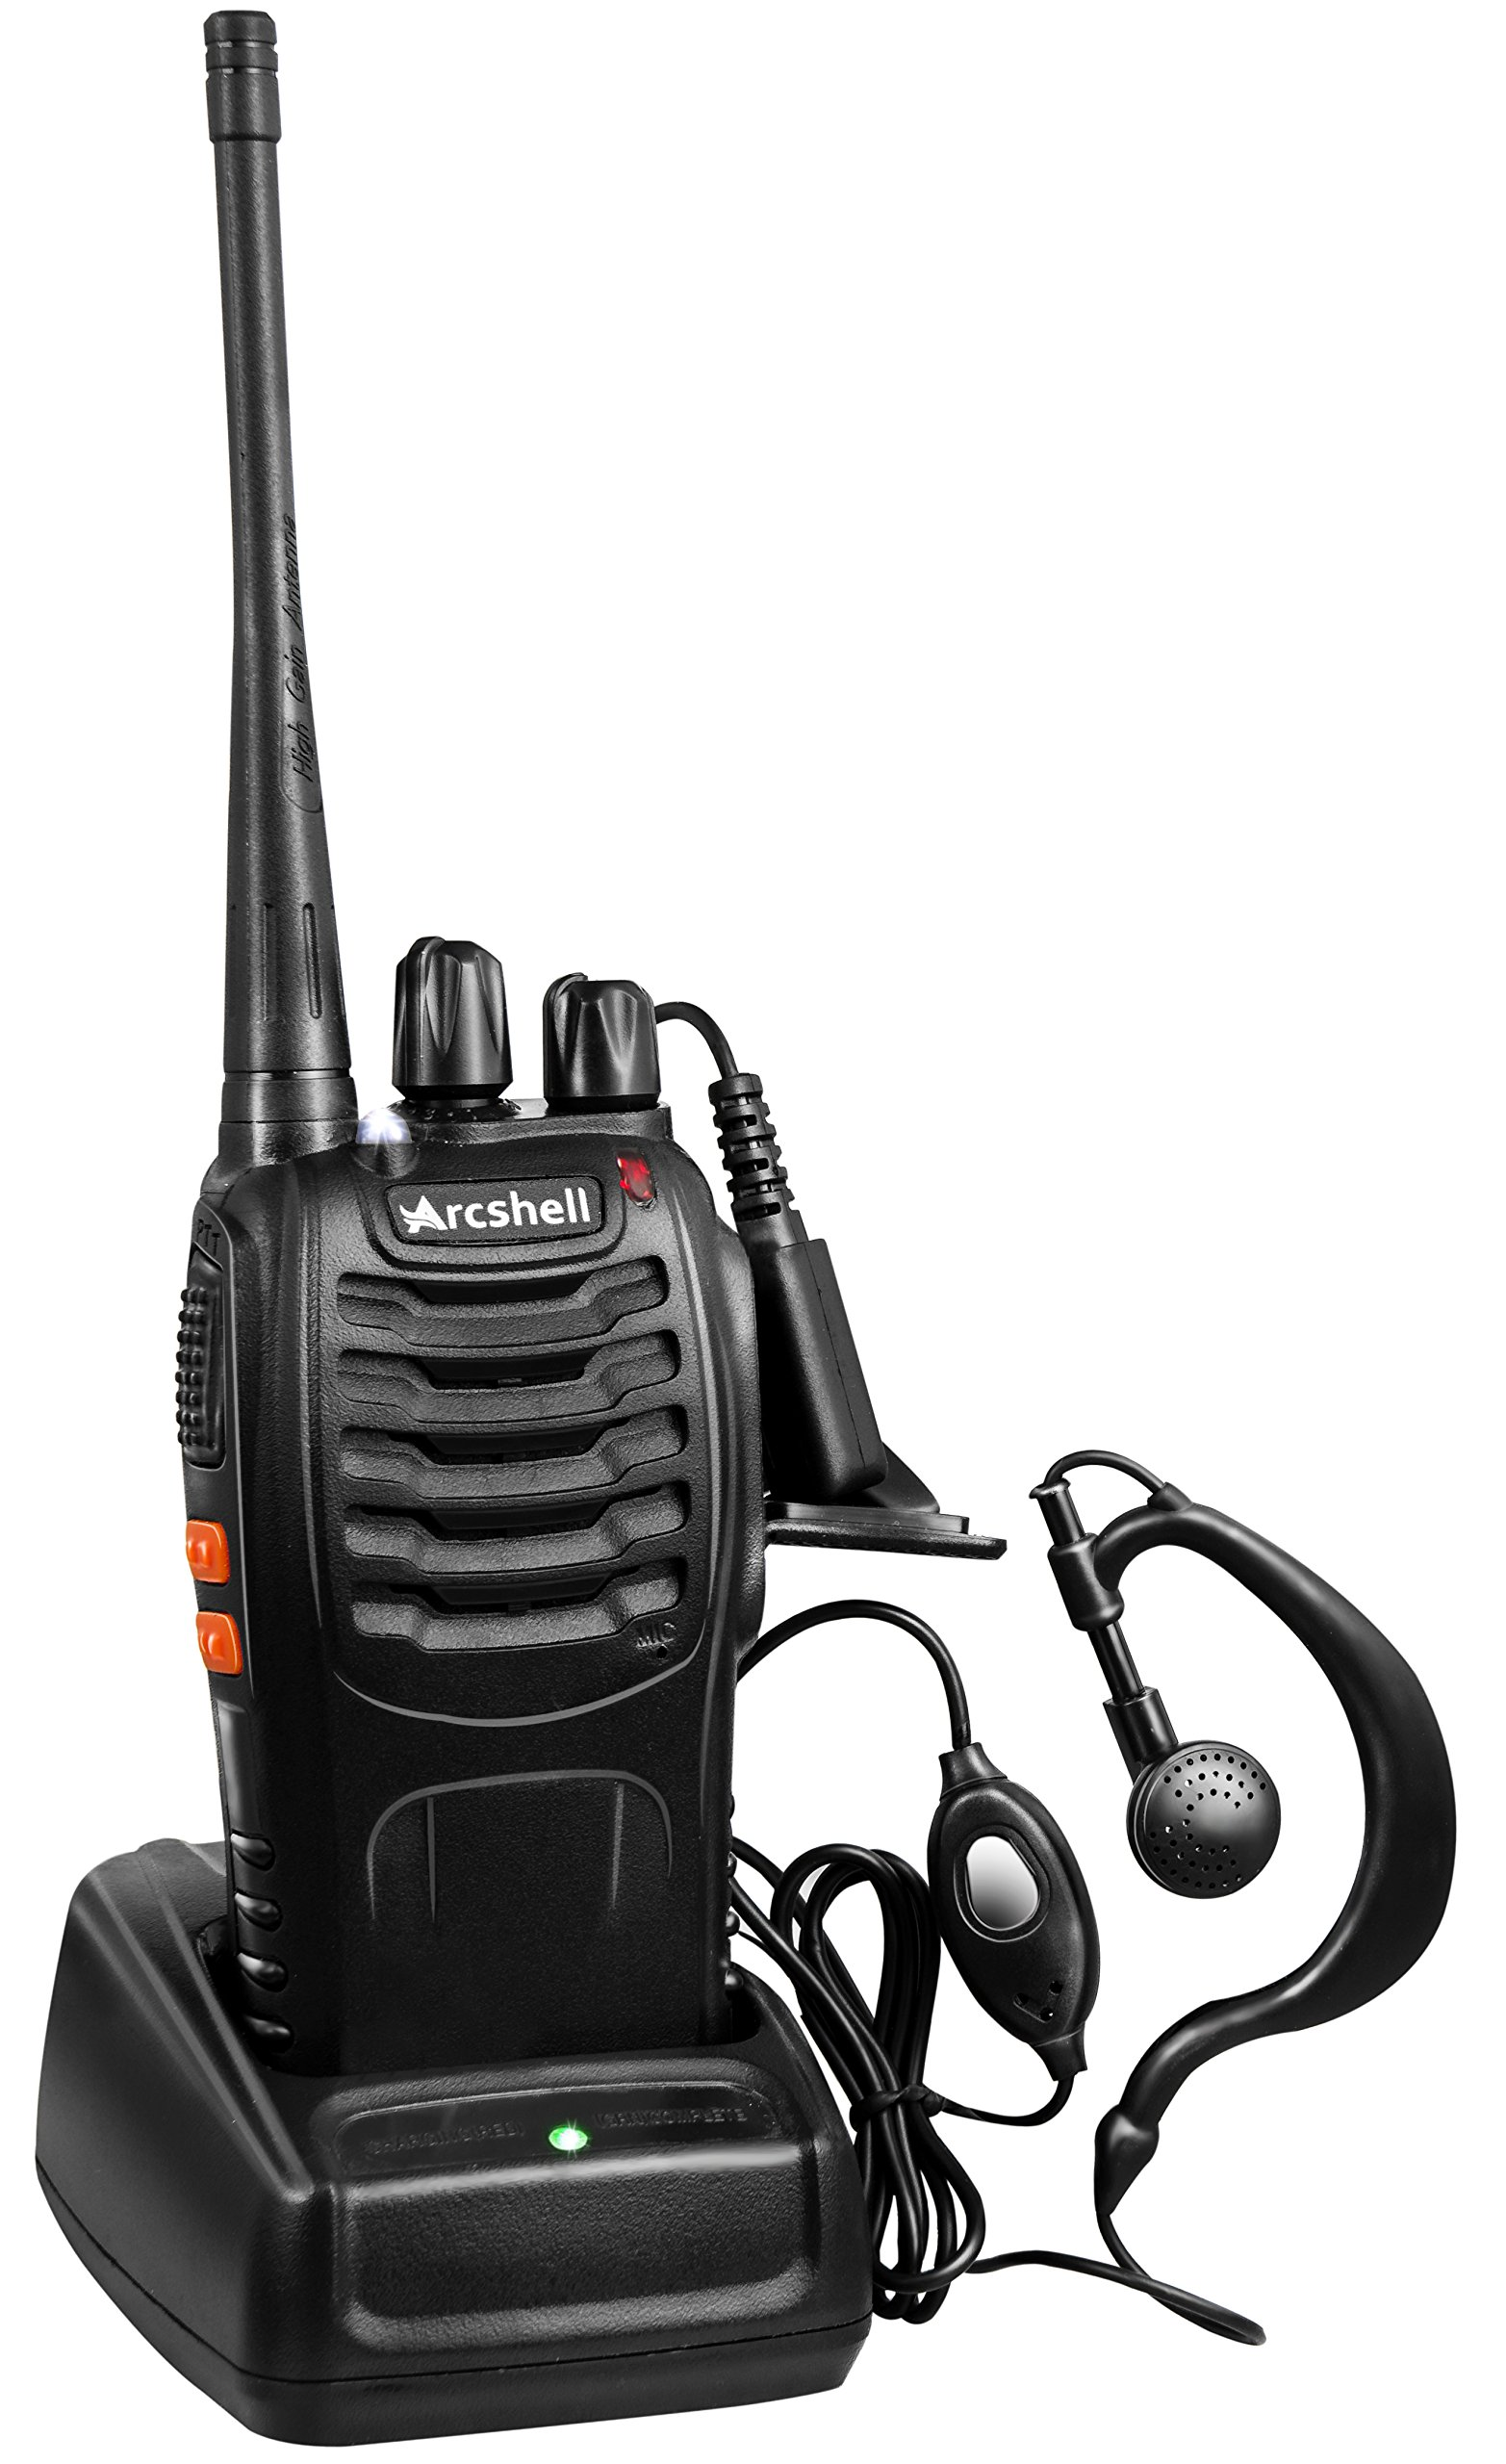 Arcshell Rechargeable Long Range Two-way Radios with Earpiece 2 Pack UHF 400-470Mhz Walkie Talkies Li-ion Battery and Charger included by Arcshell (Image #4)